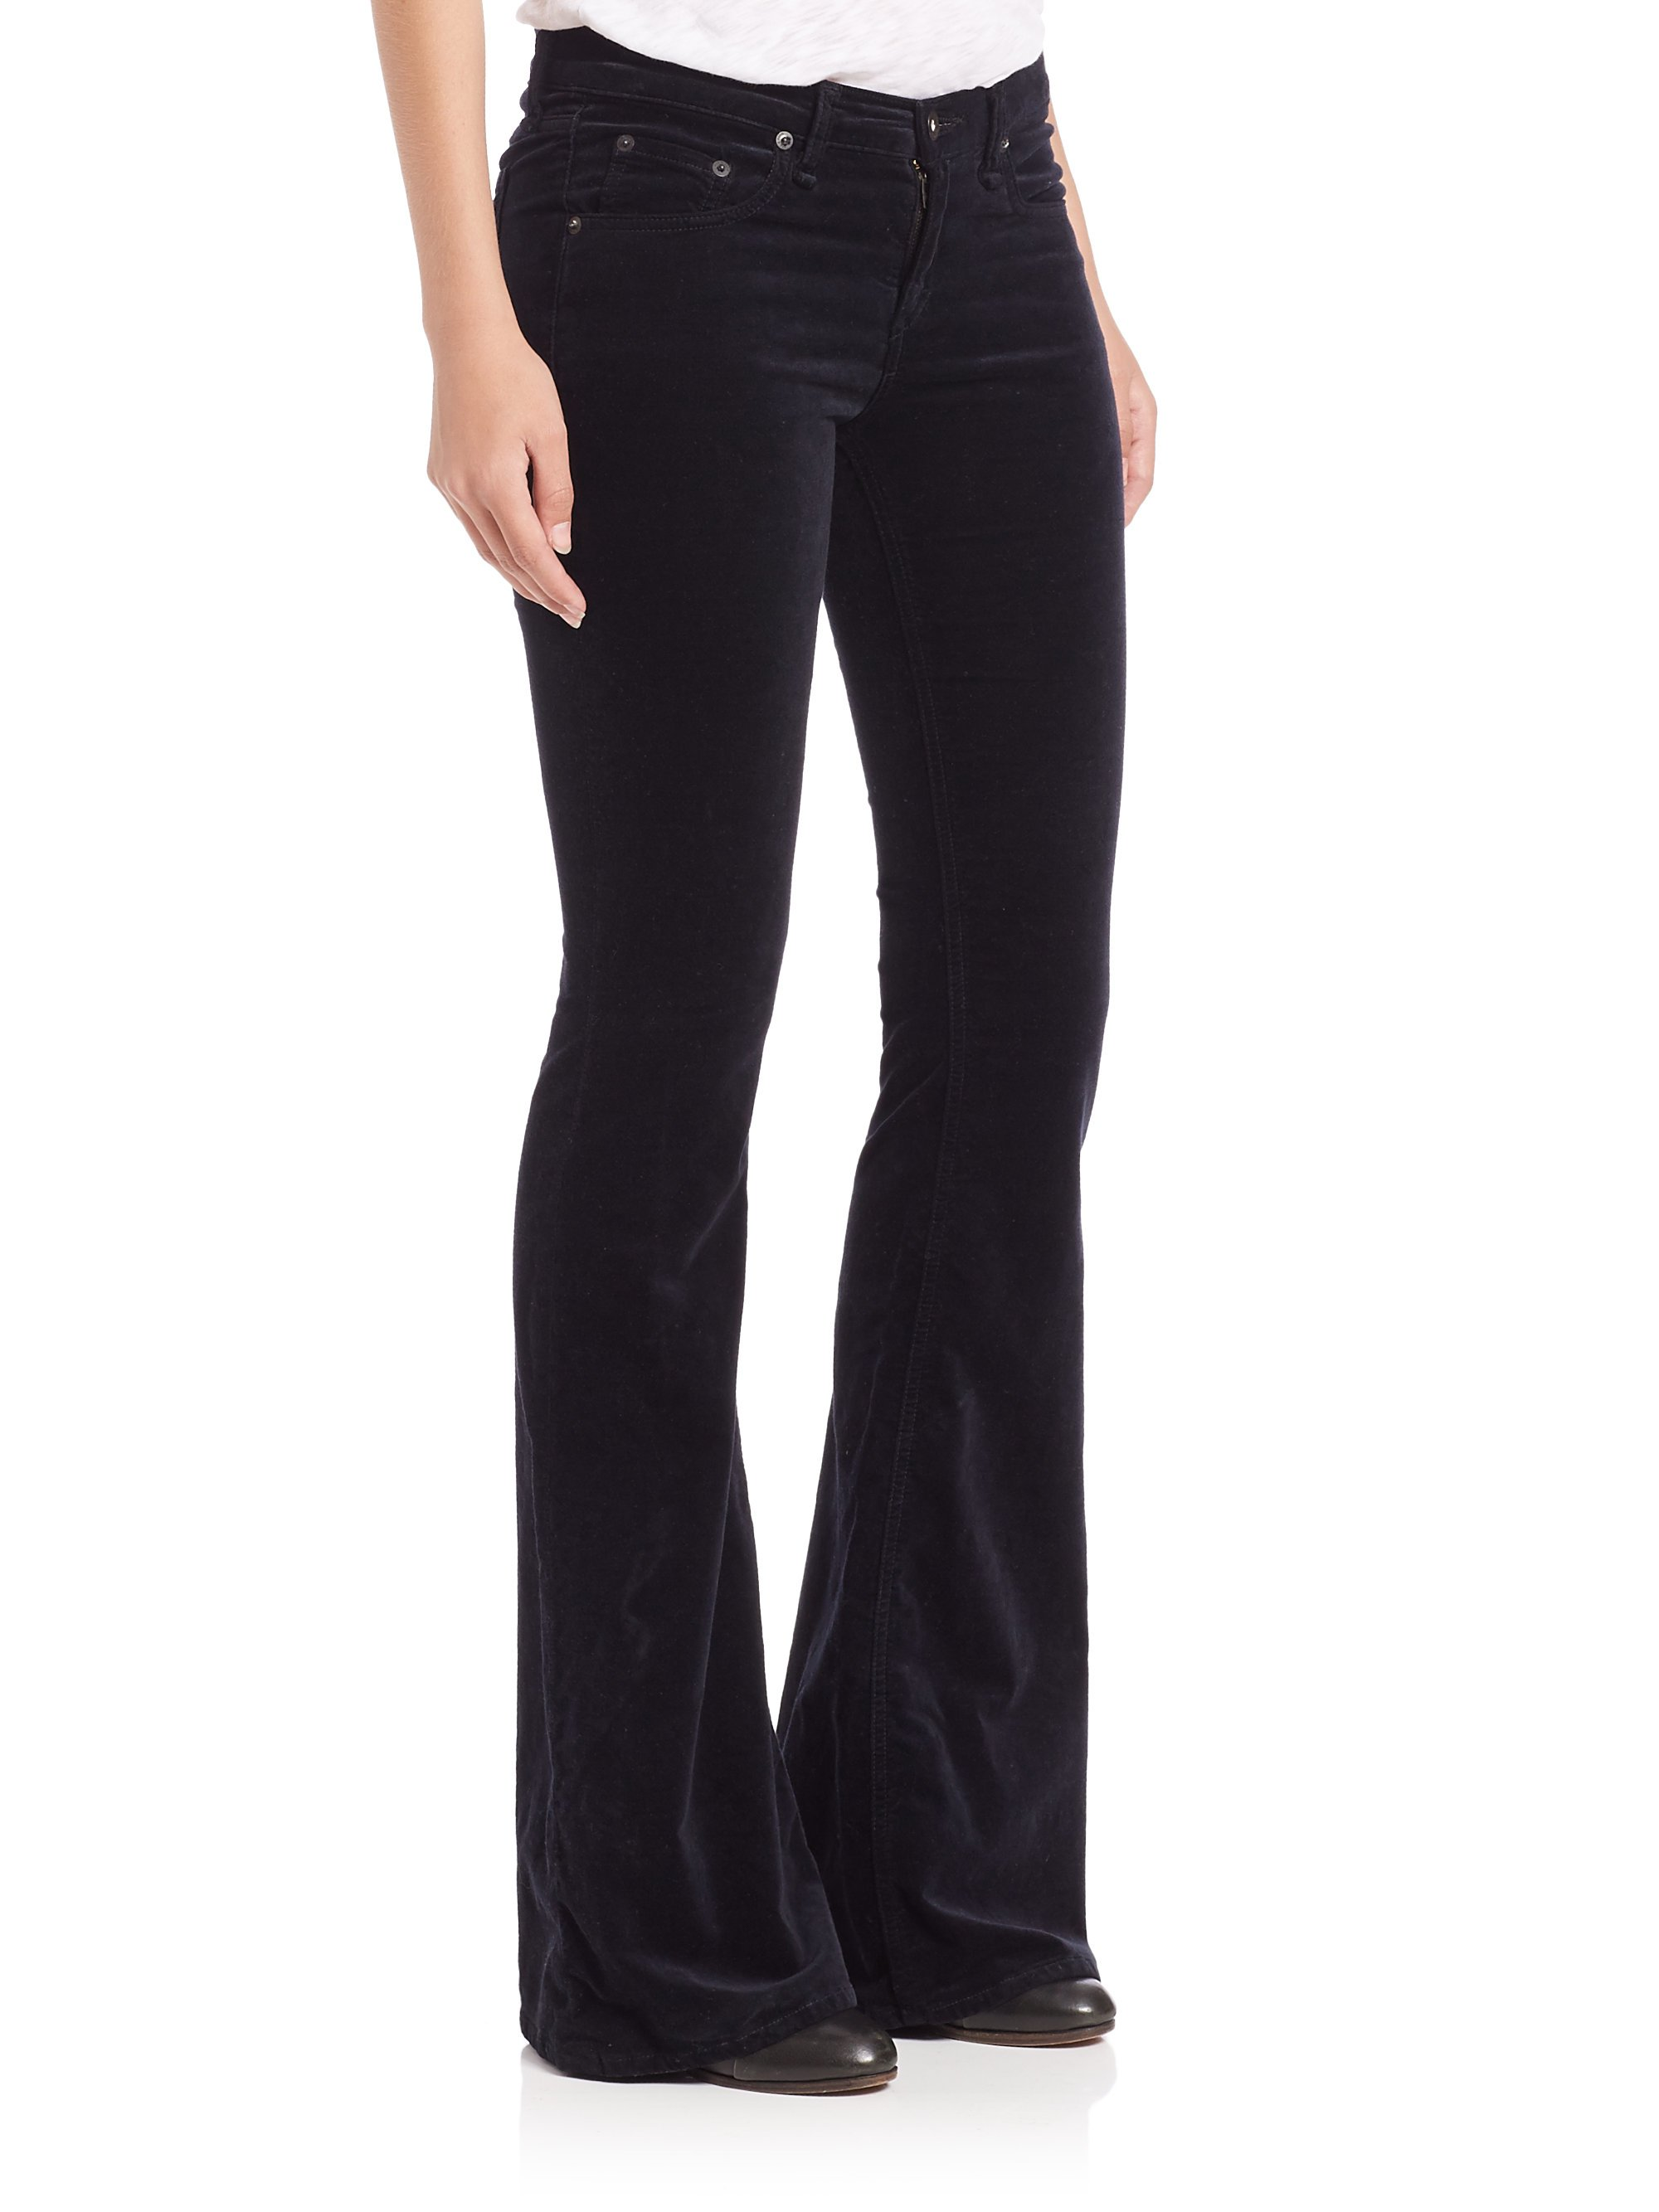 7 For All Mankind Jeans For Women